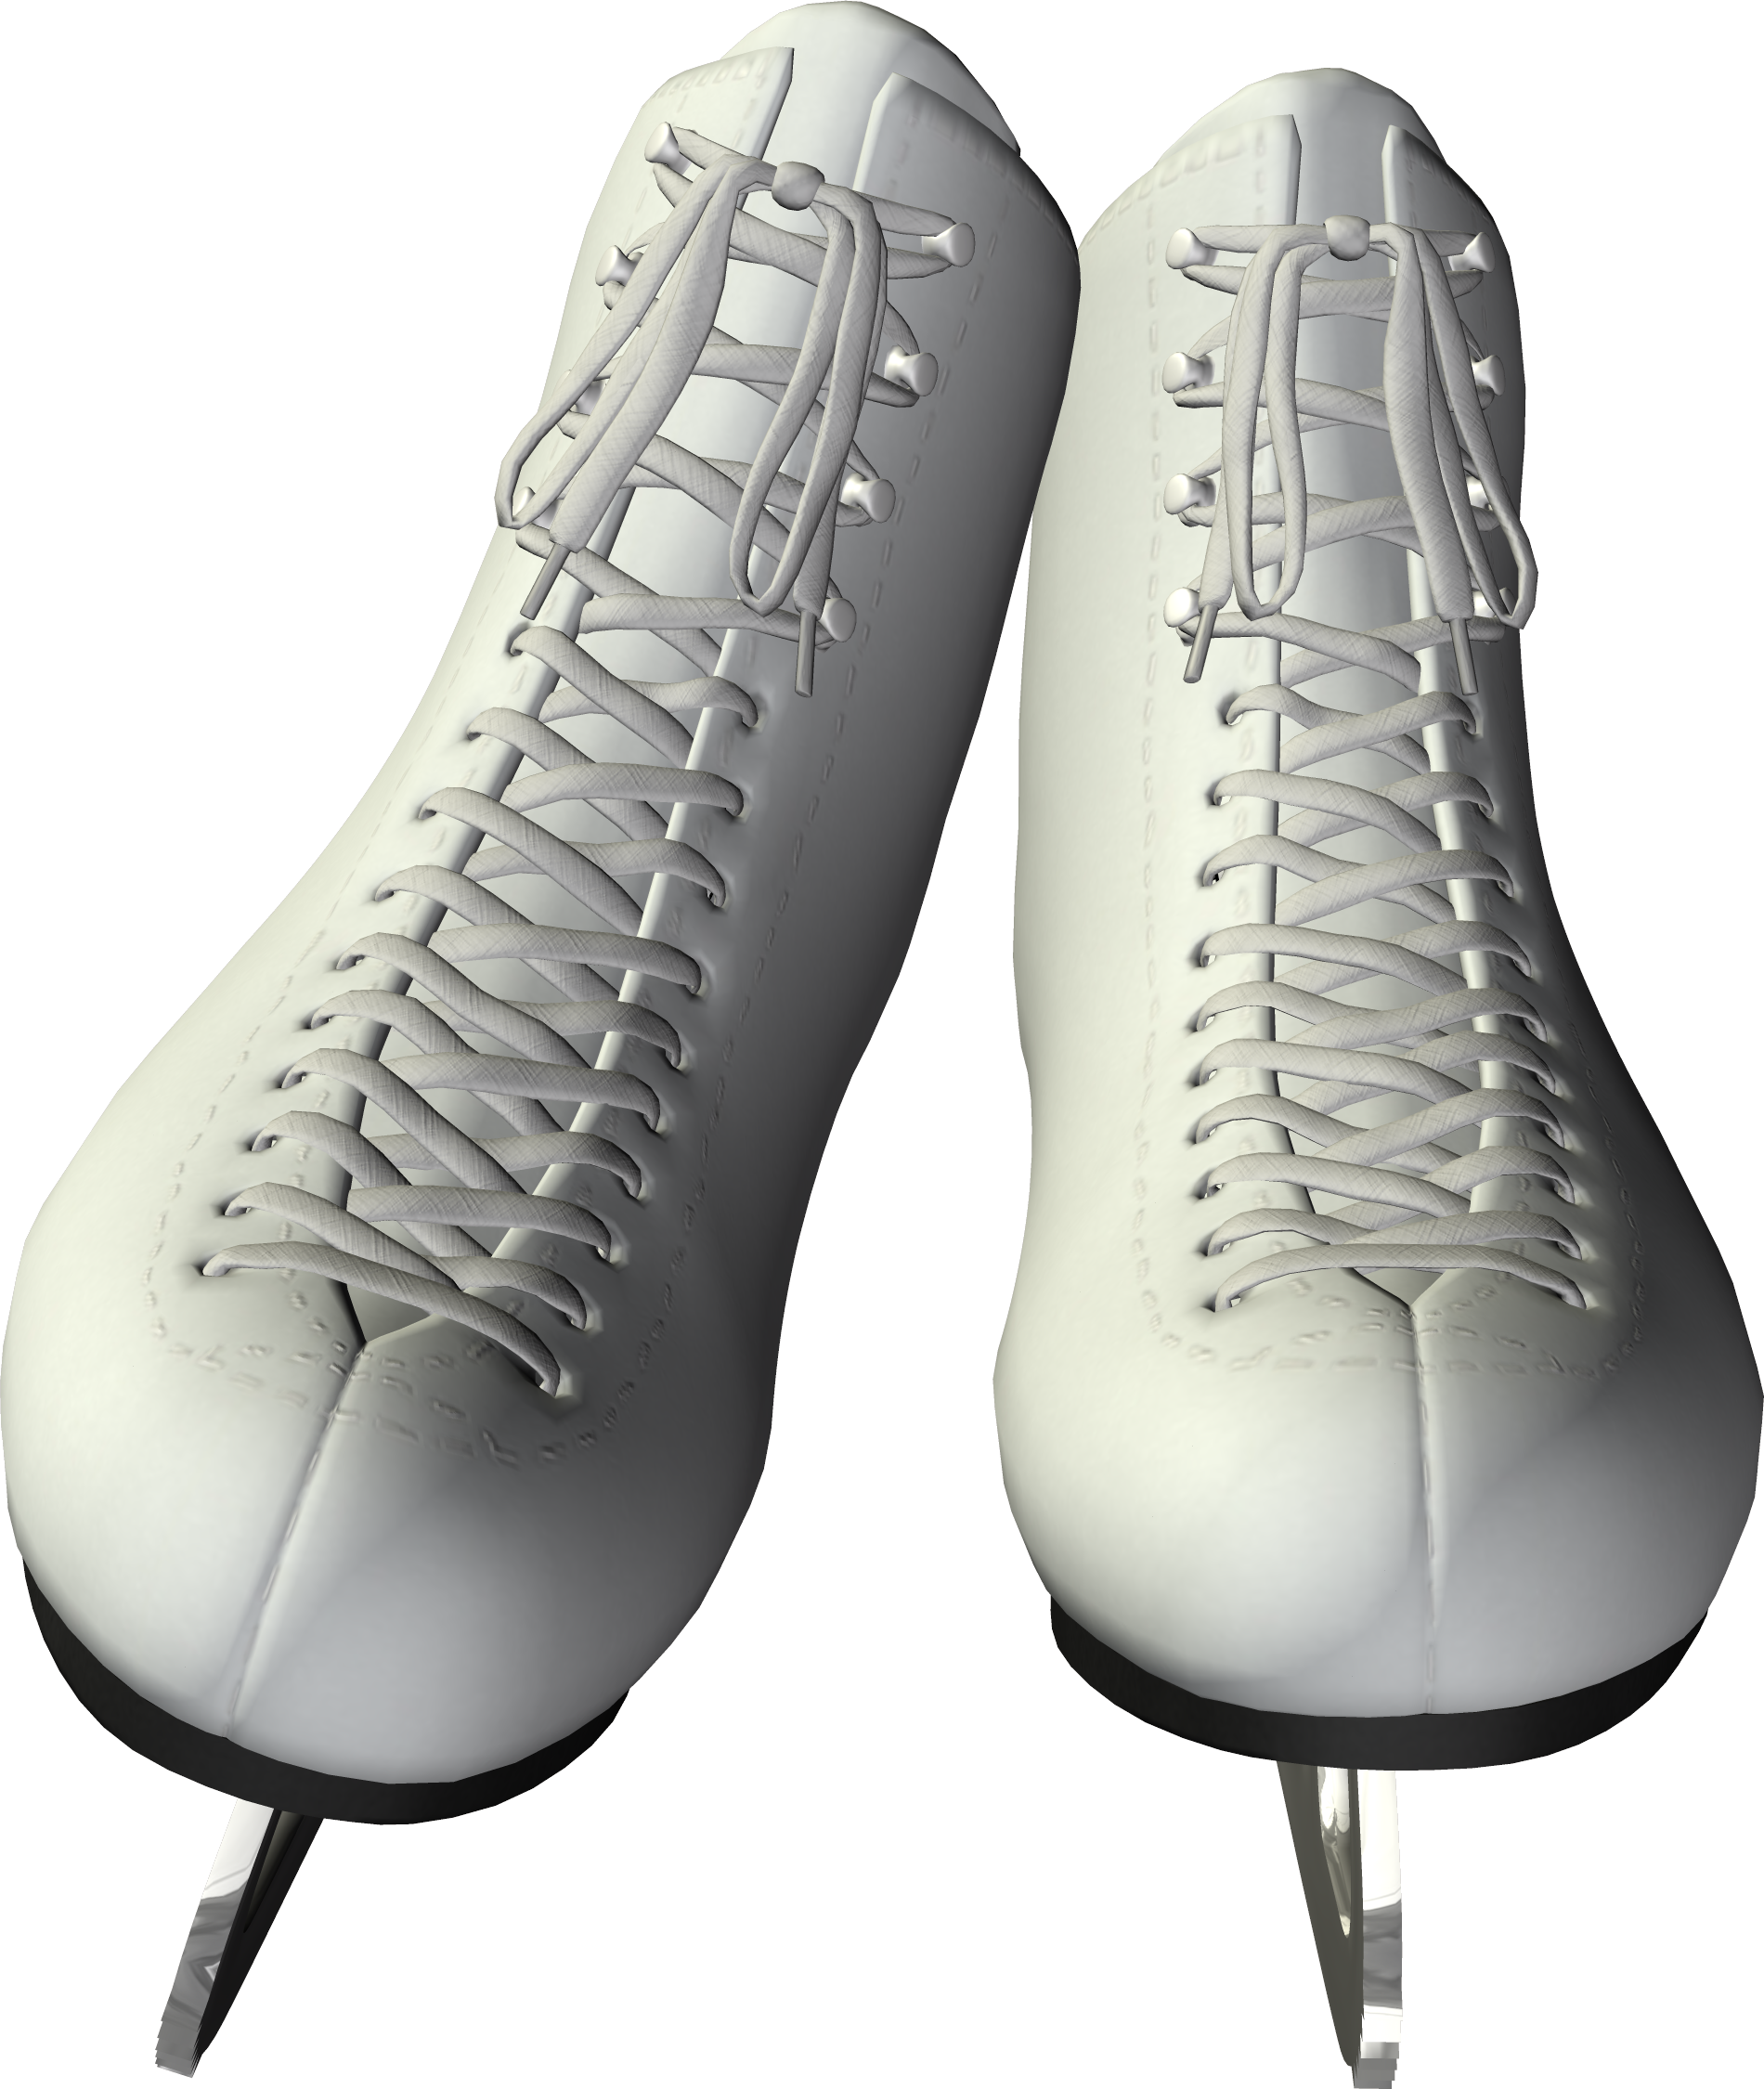 Ice Skates Png Image Boots Ice Skating Shoes